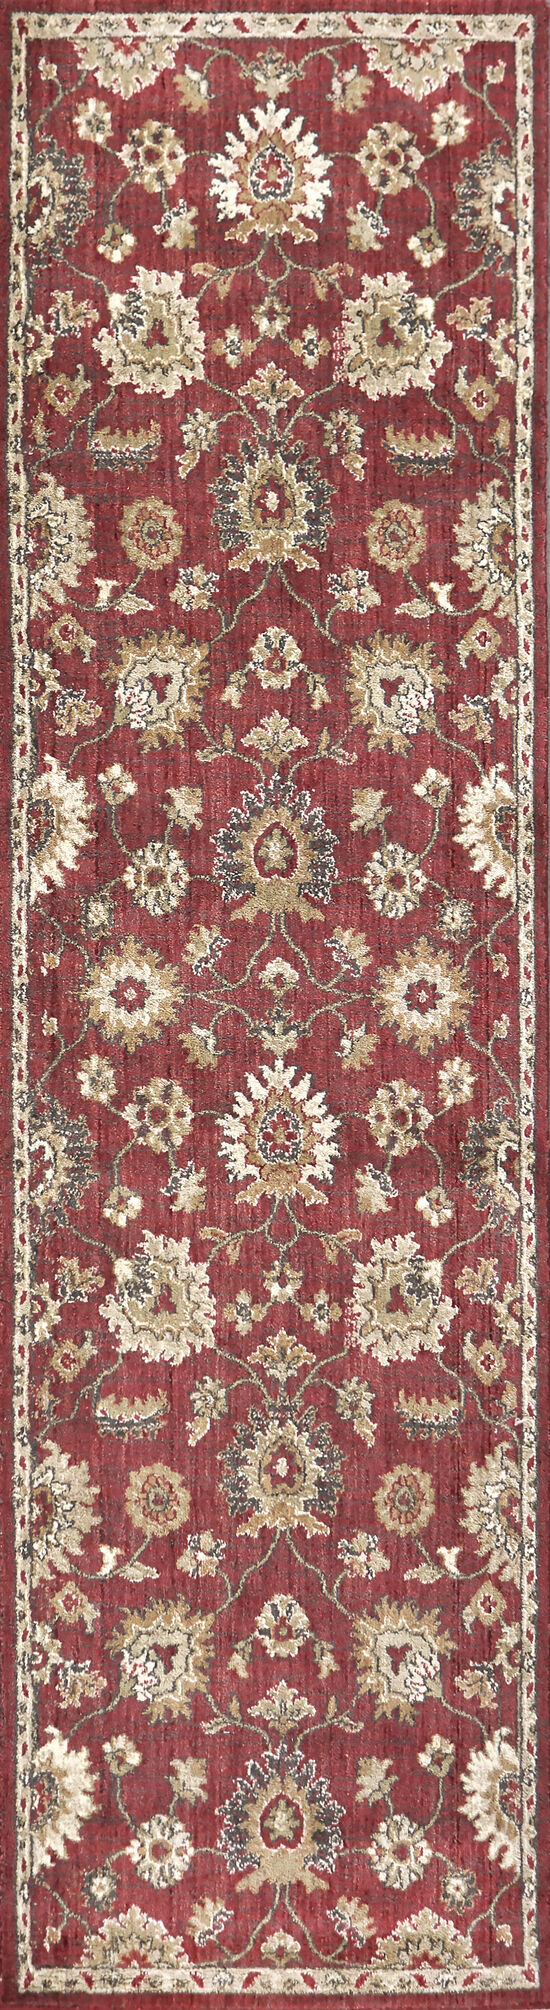 Transitional Power-Loomed 10 x 13 Rectangle Rug in Red